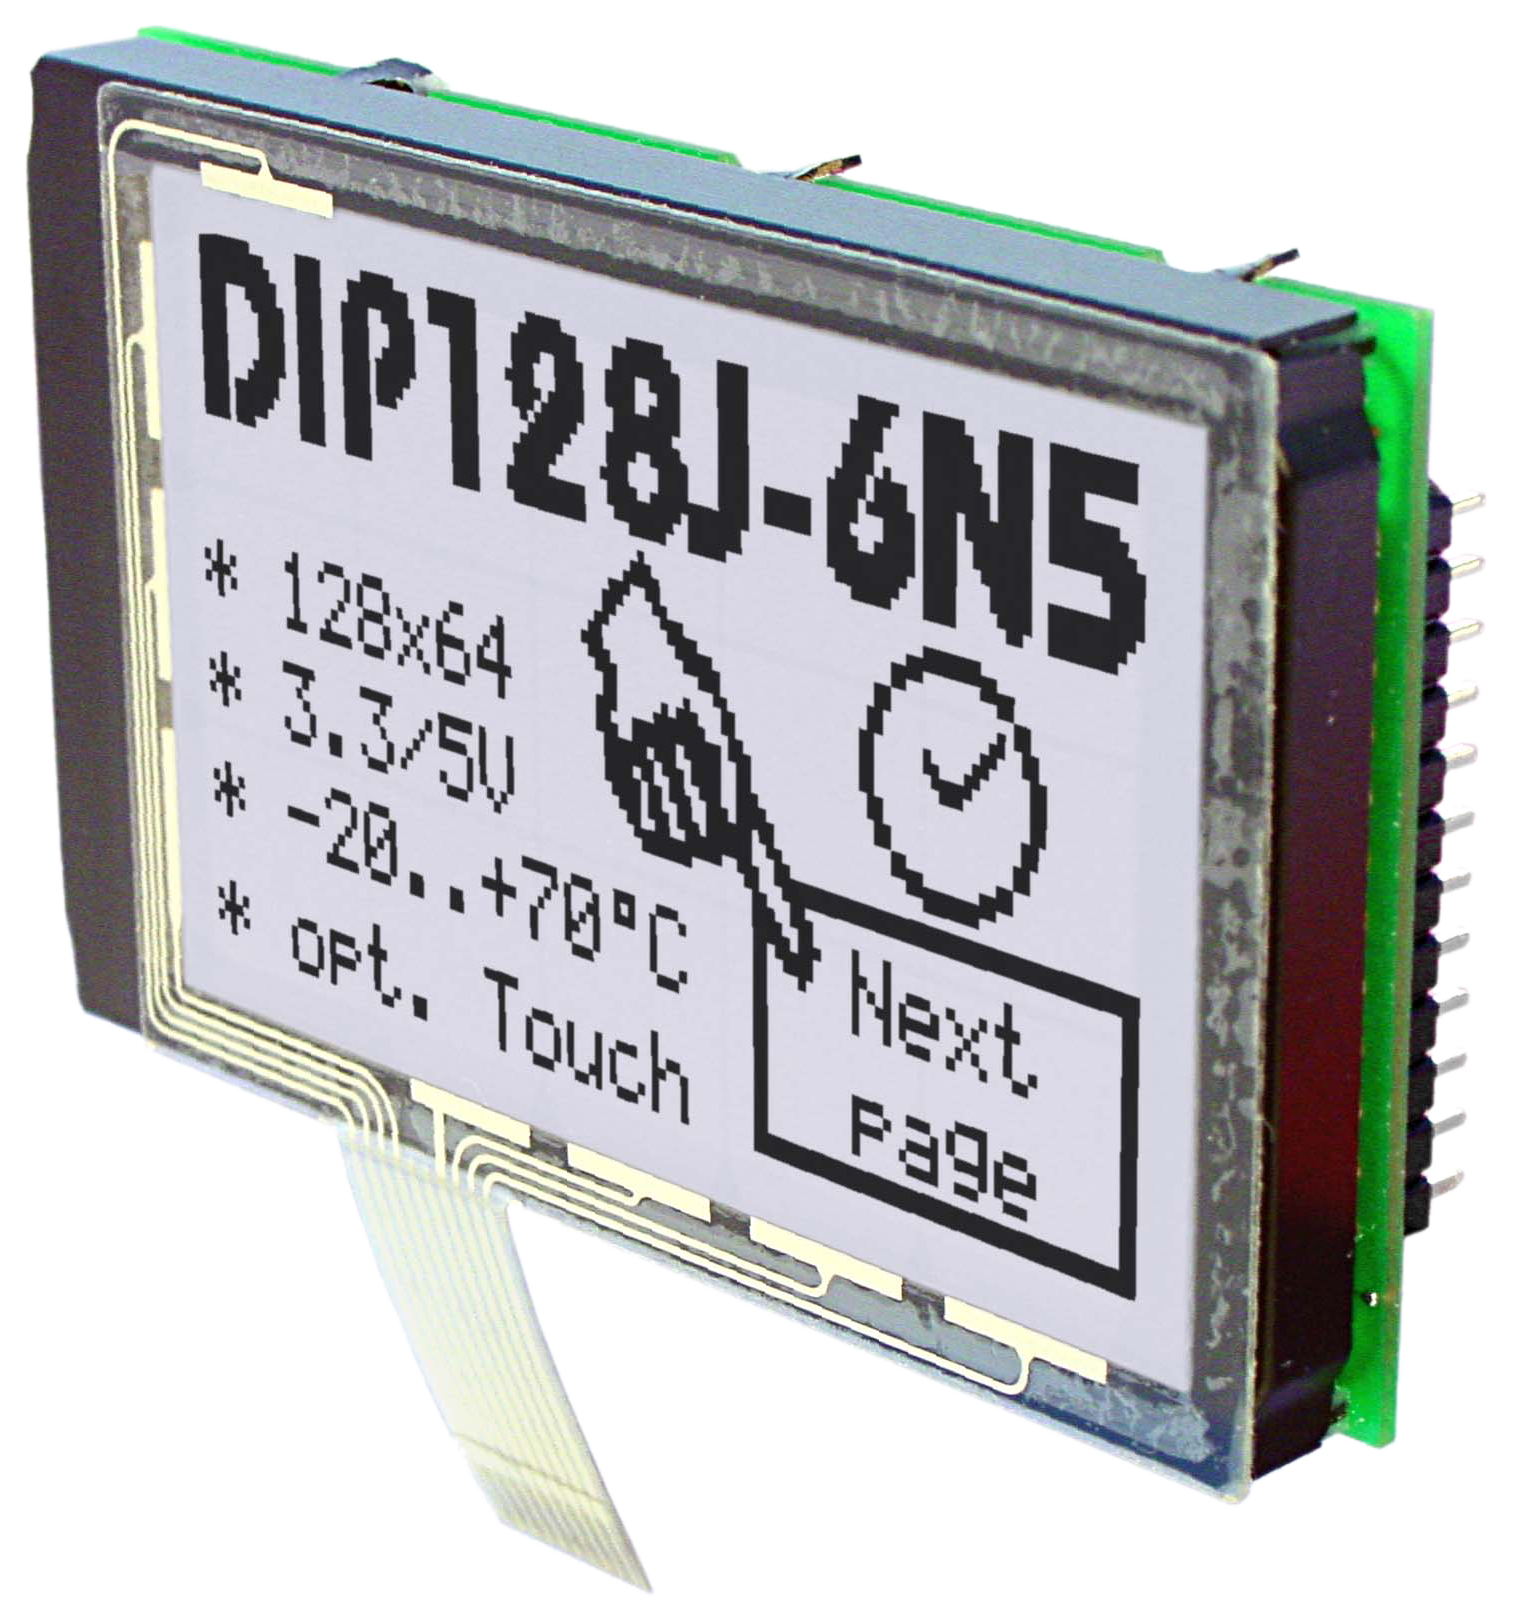 Displays in Chip on Board (COB) TEchnik, hier EA DIP128 als Grafikdisplay mit 128x64 Pixeln